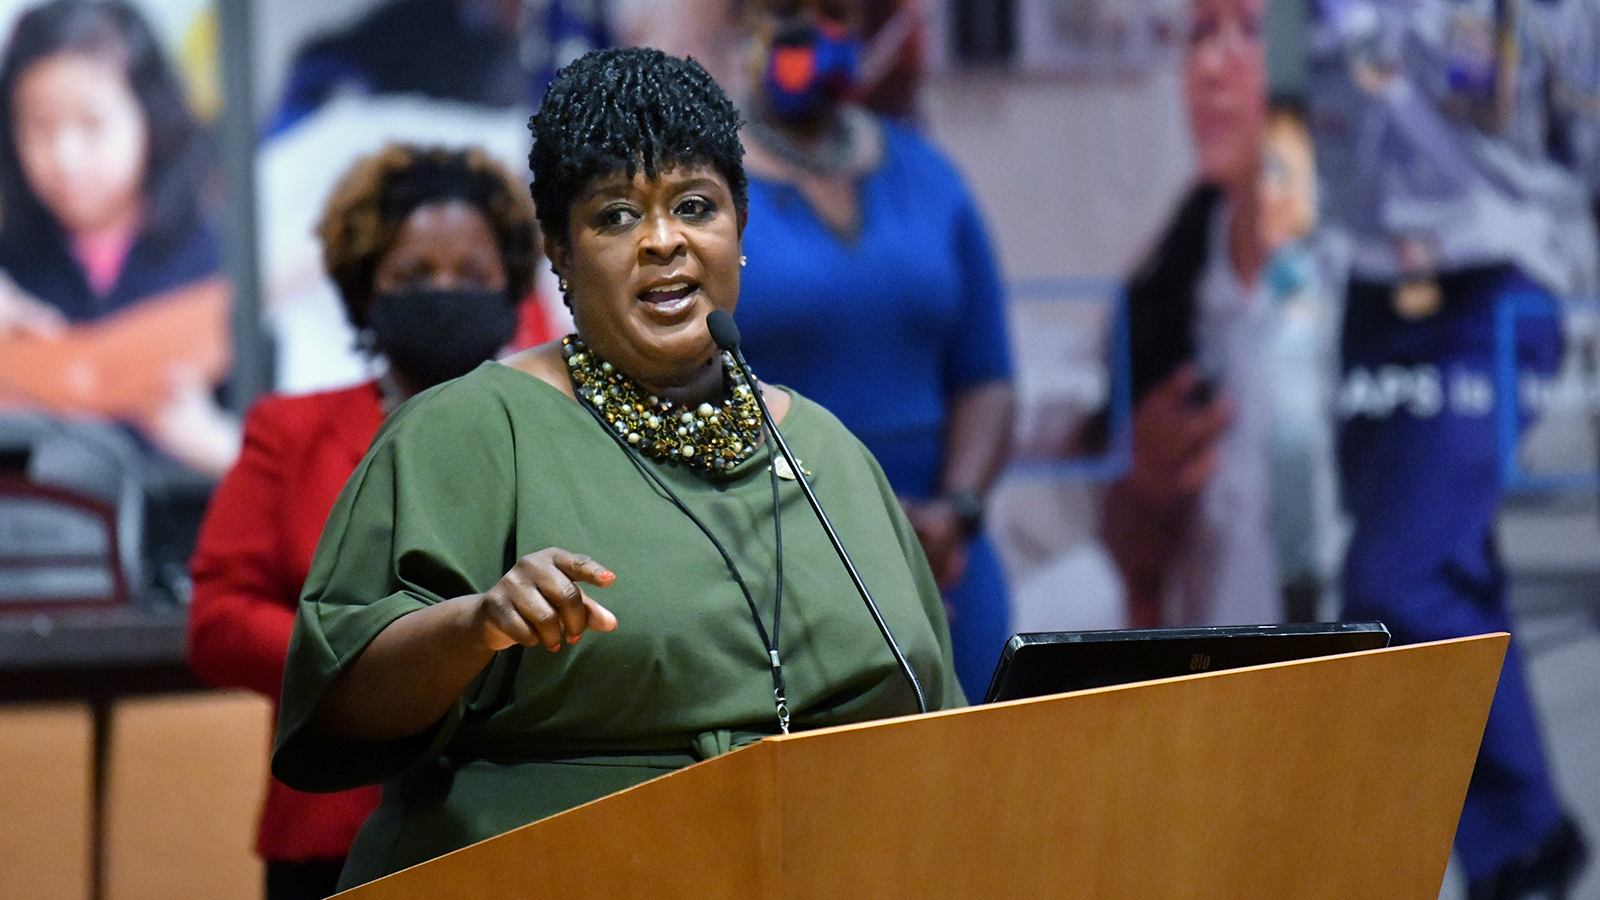 New Atlanta Public Schools Superintendent Lisa Herring speaks after she was sworn in during a ceremony at Atlanta Public Schools Headquarters in Atlanta on Wednesday, July 1.